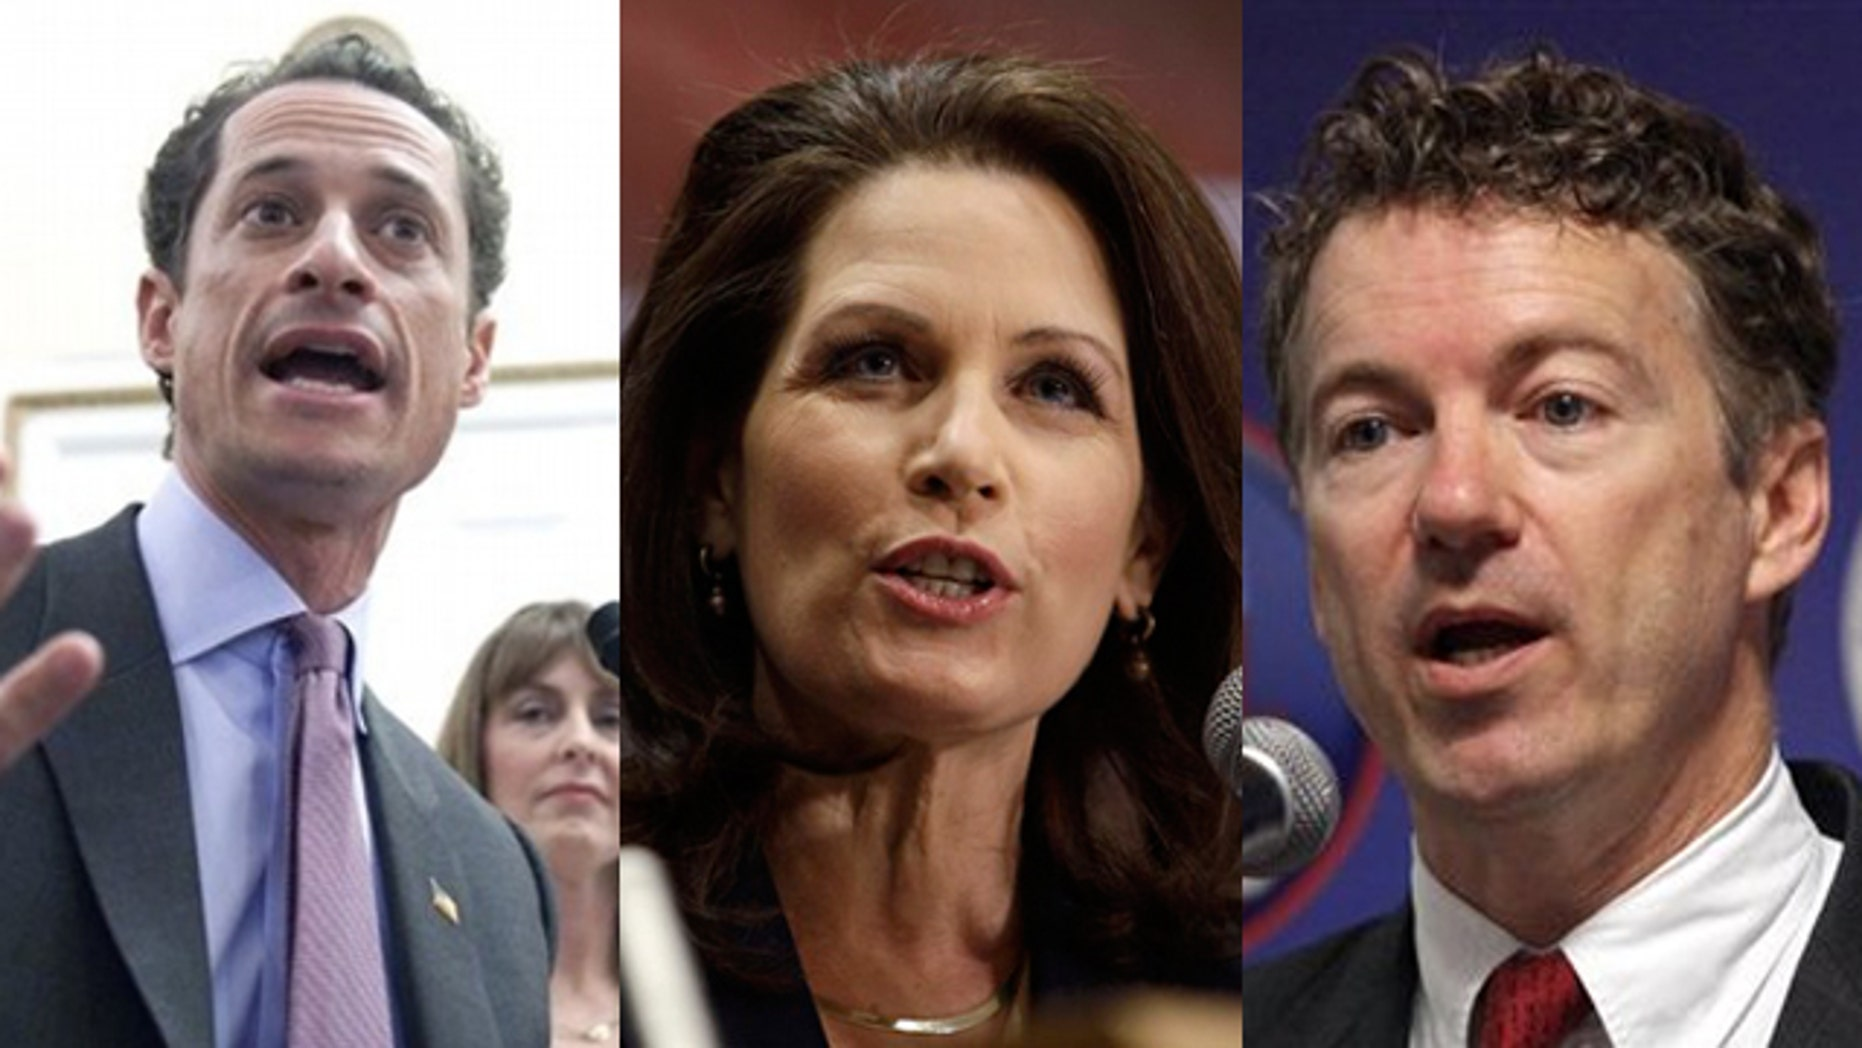 Shown here are Rep. Anthony Weiner, left, Rep. Michele Bachmann, center, and Sen. Rand Paul.